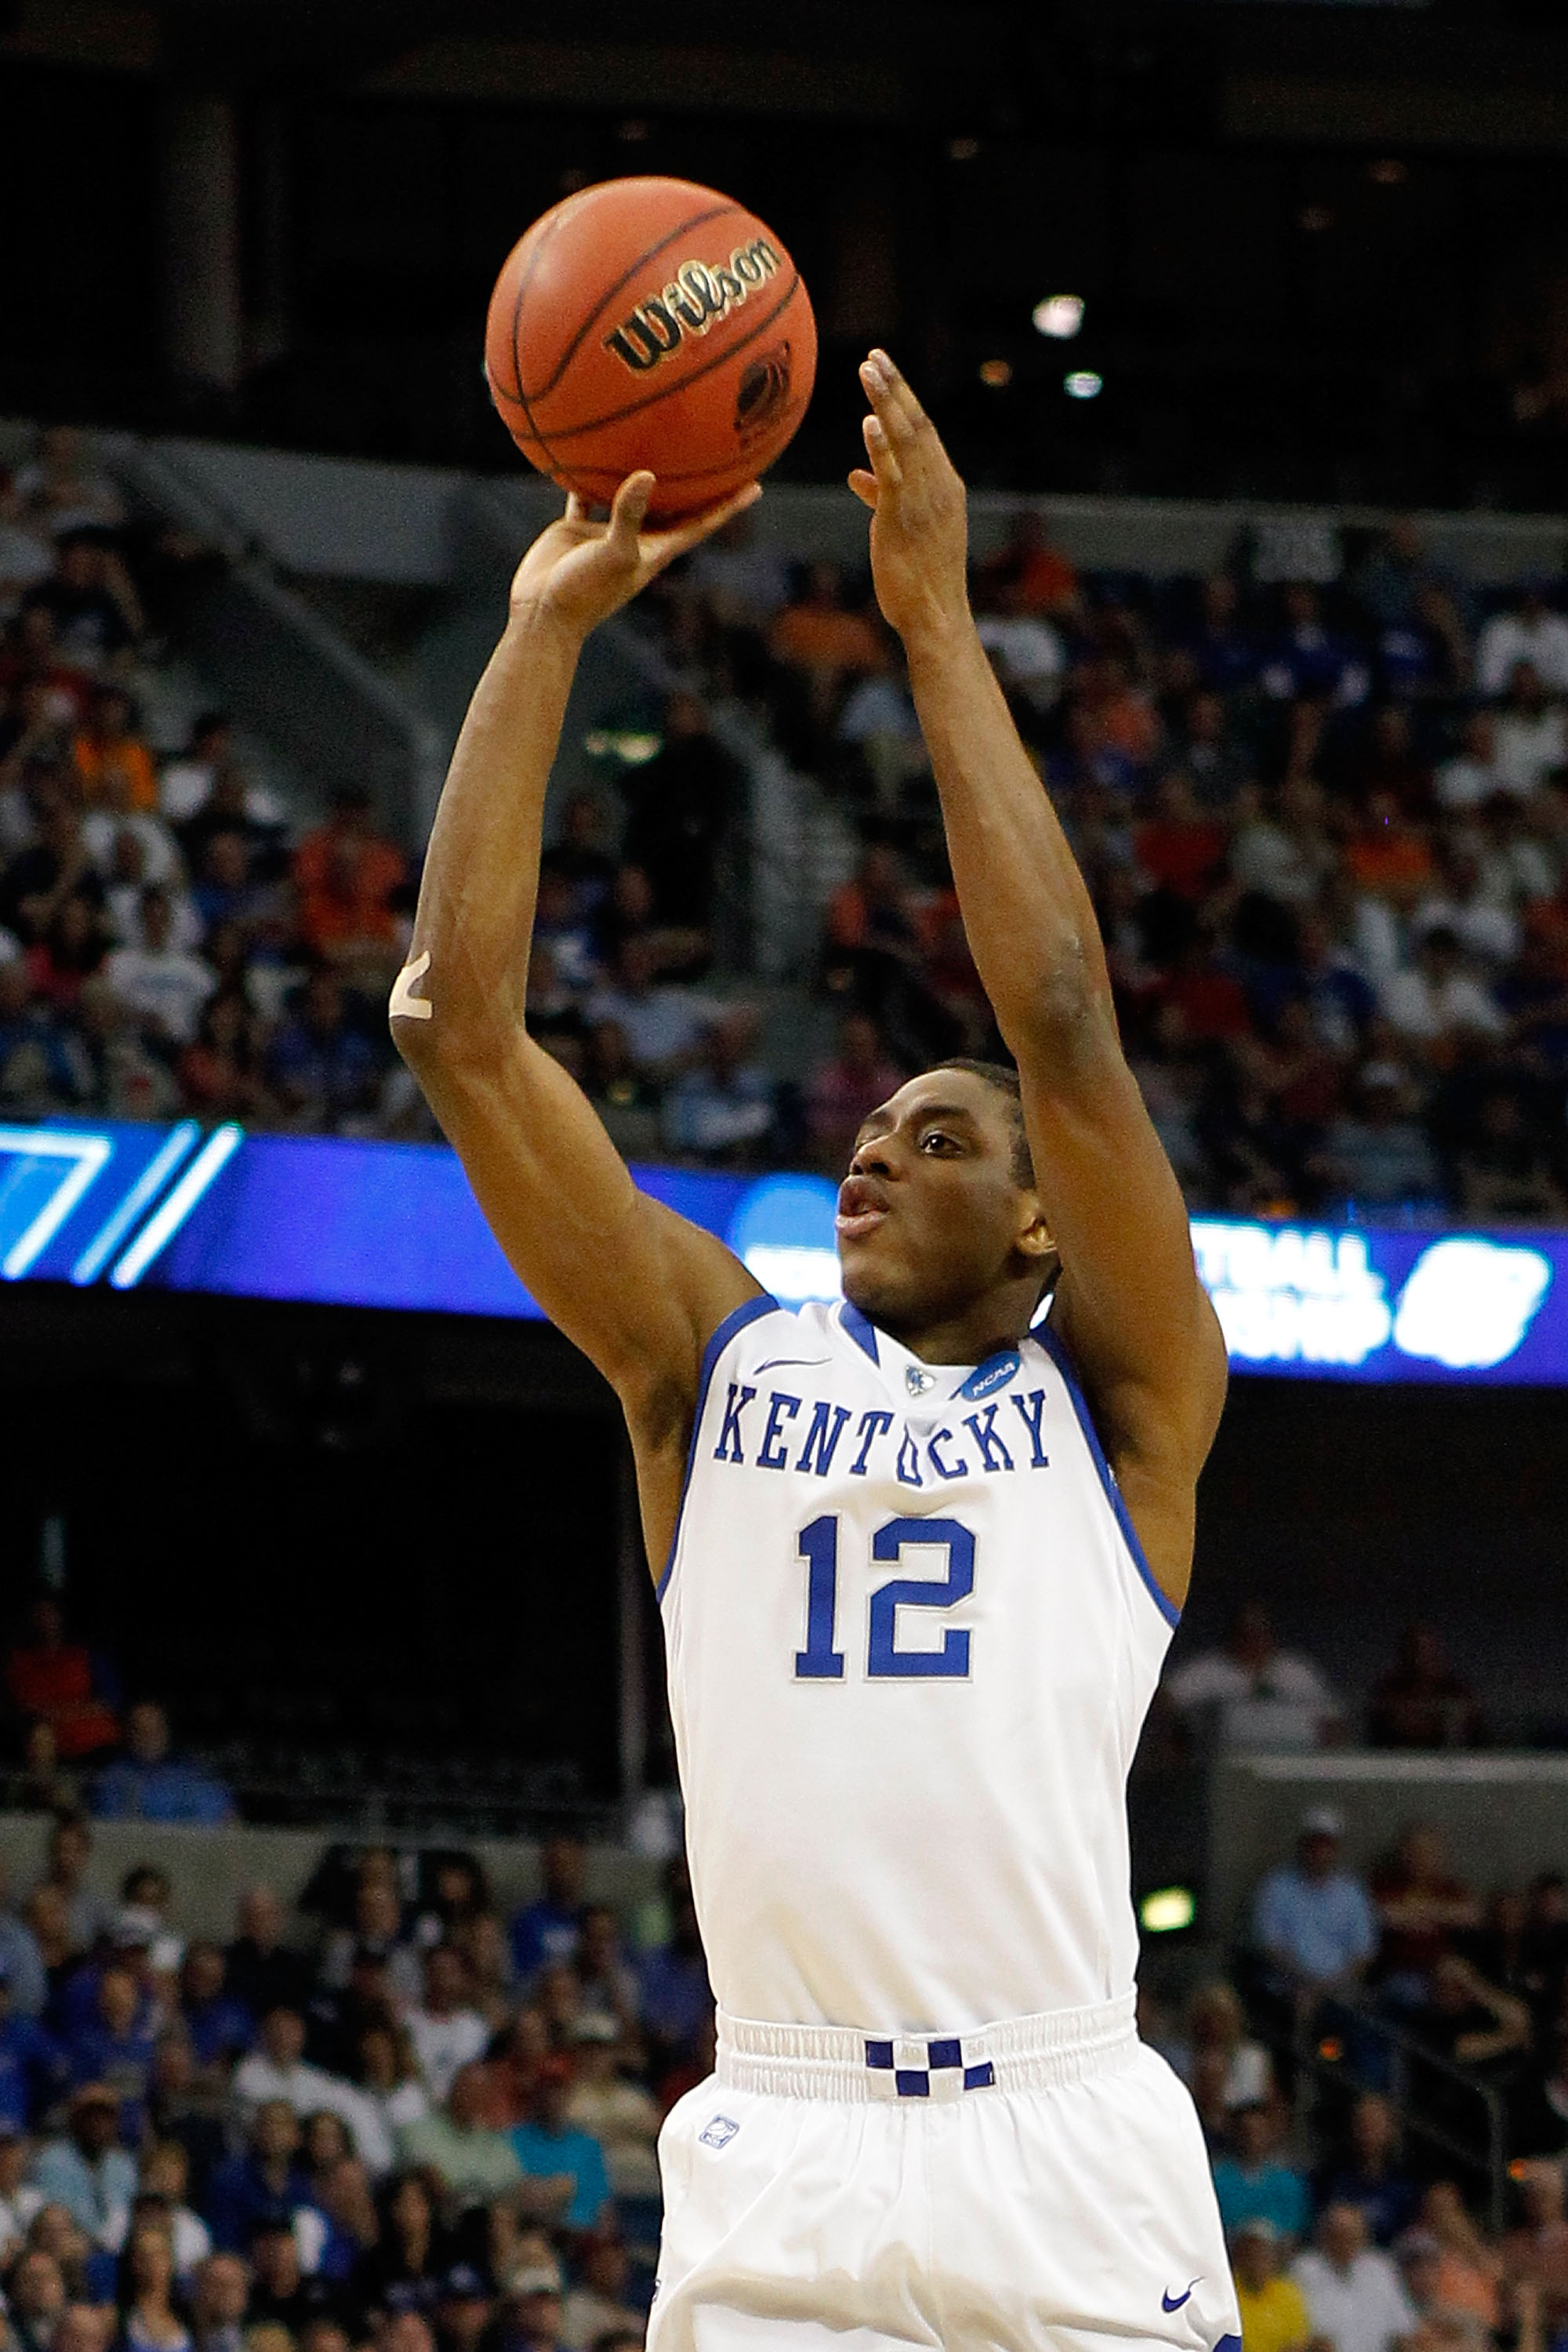 TAMPA, FL - MARCH 19:  Brandon Knight #12 of the Kentucky Wildcats attempts a shot against the West Virginia Mountaineers during the third round of the 2011 NCAA men's basketball tournament at St. Pete Times Forum on March 19, 2011 in Tampa, Florida. Kent